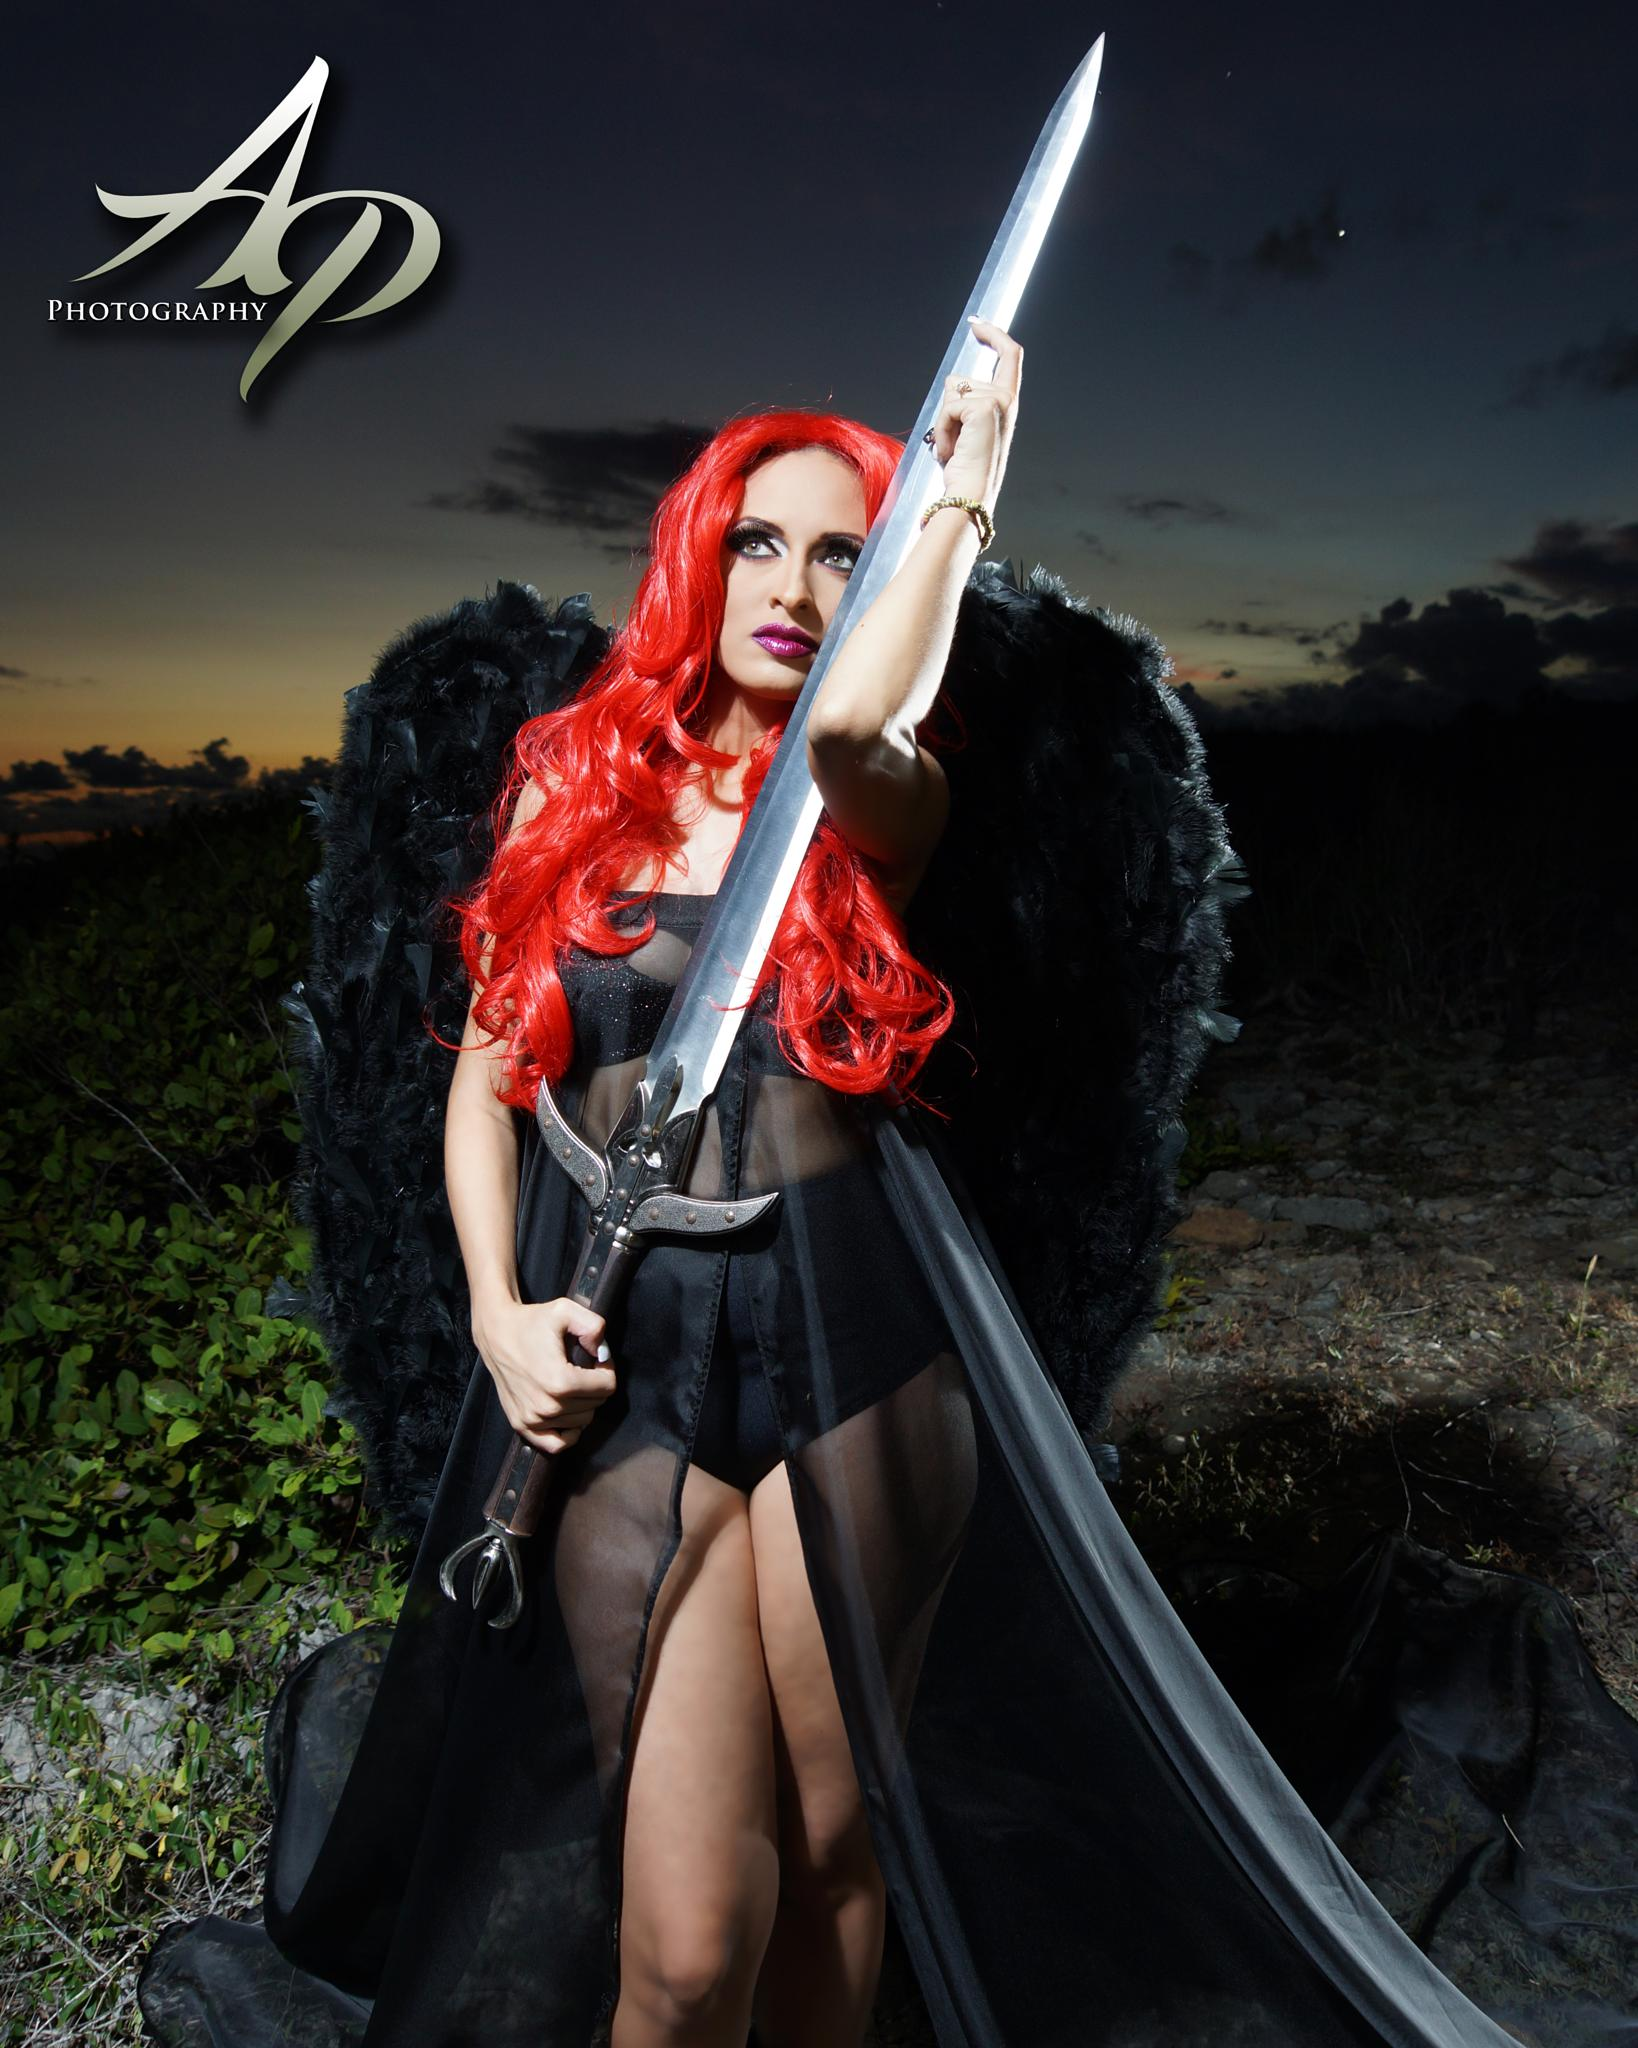 Sexy Black Angel by AP Photography